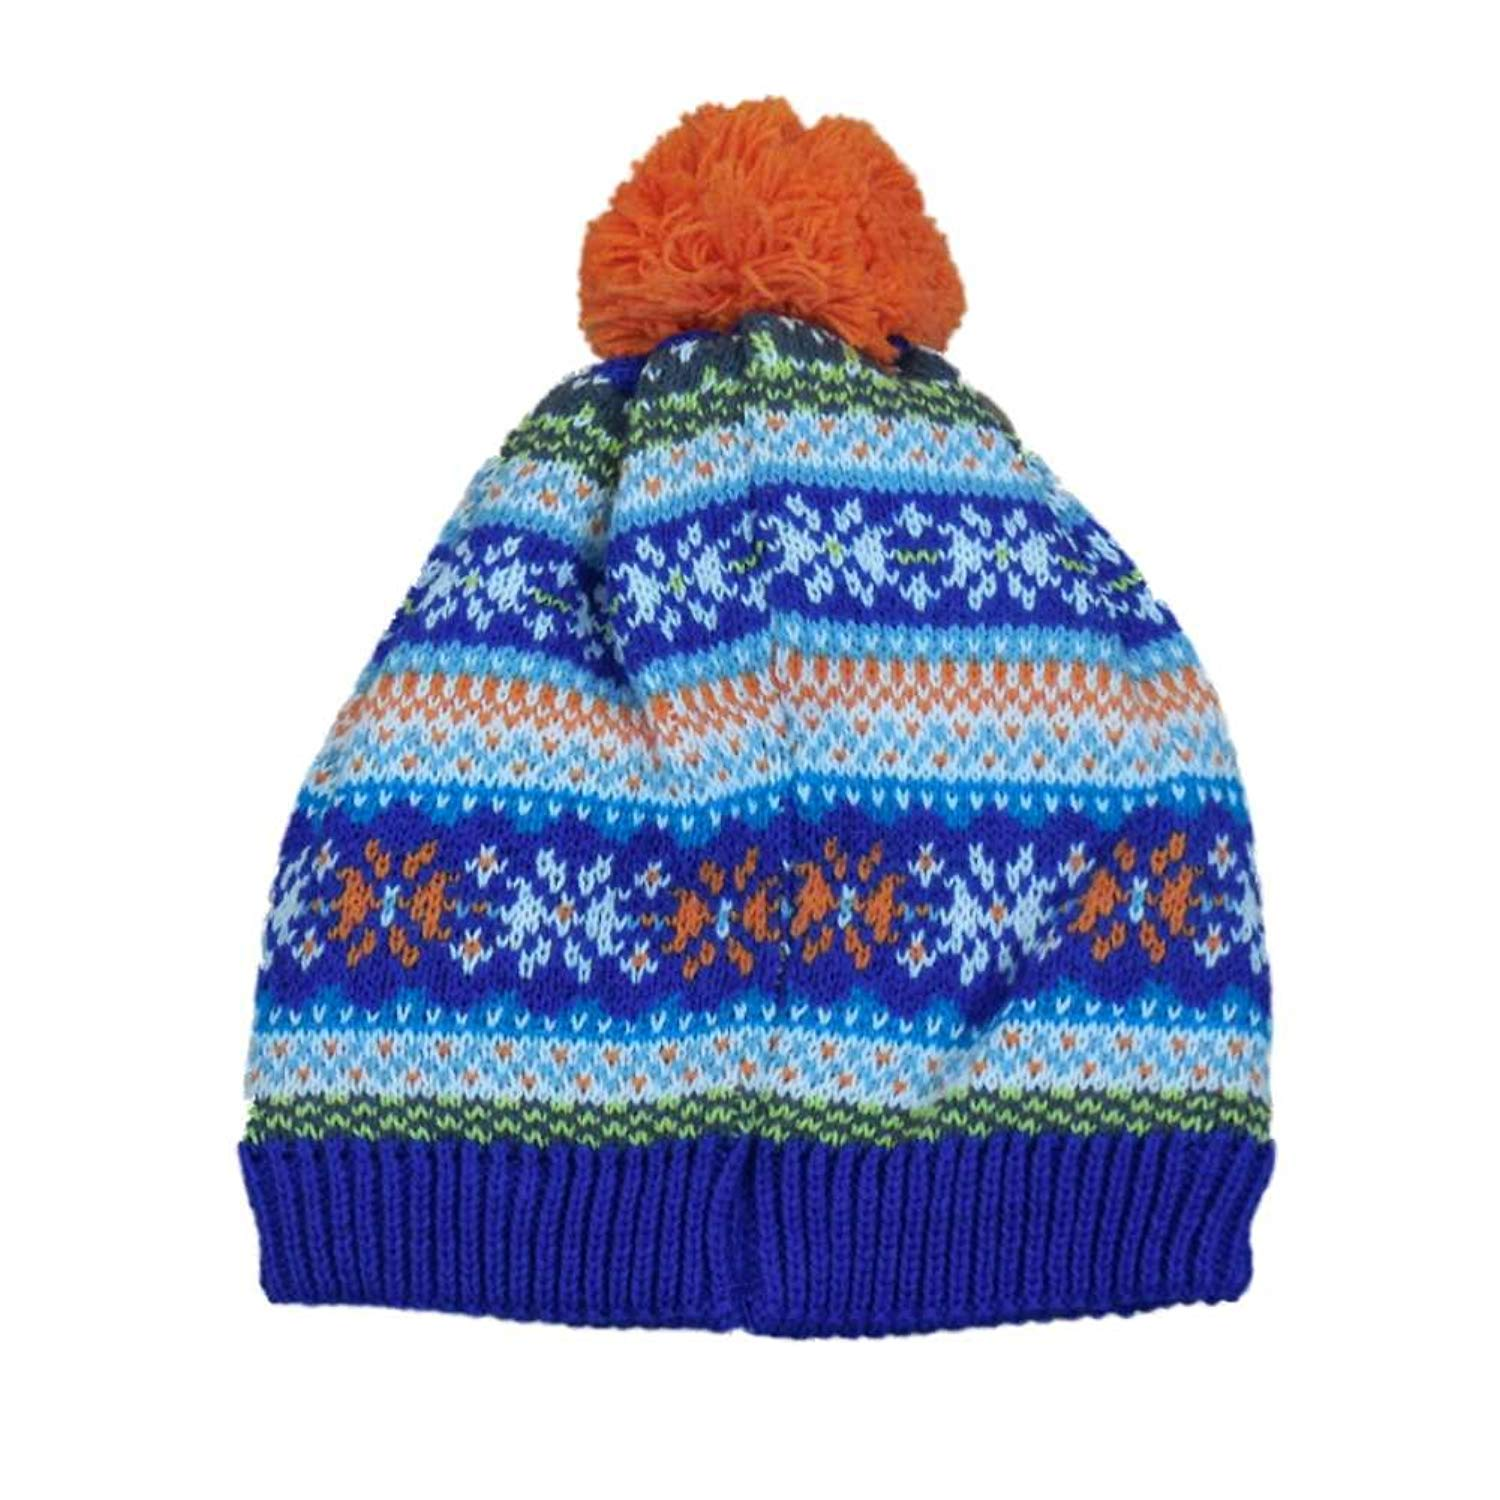 fdf3959a0ff0f1 Get Quotations · The Children's Place CP Infant Boys Girls Blue Orange  Nordic Print Beanie Pom Stocking Cap Hat